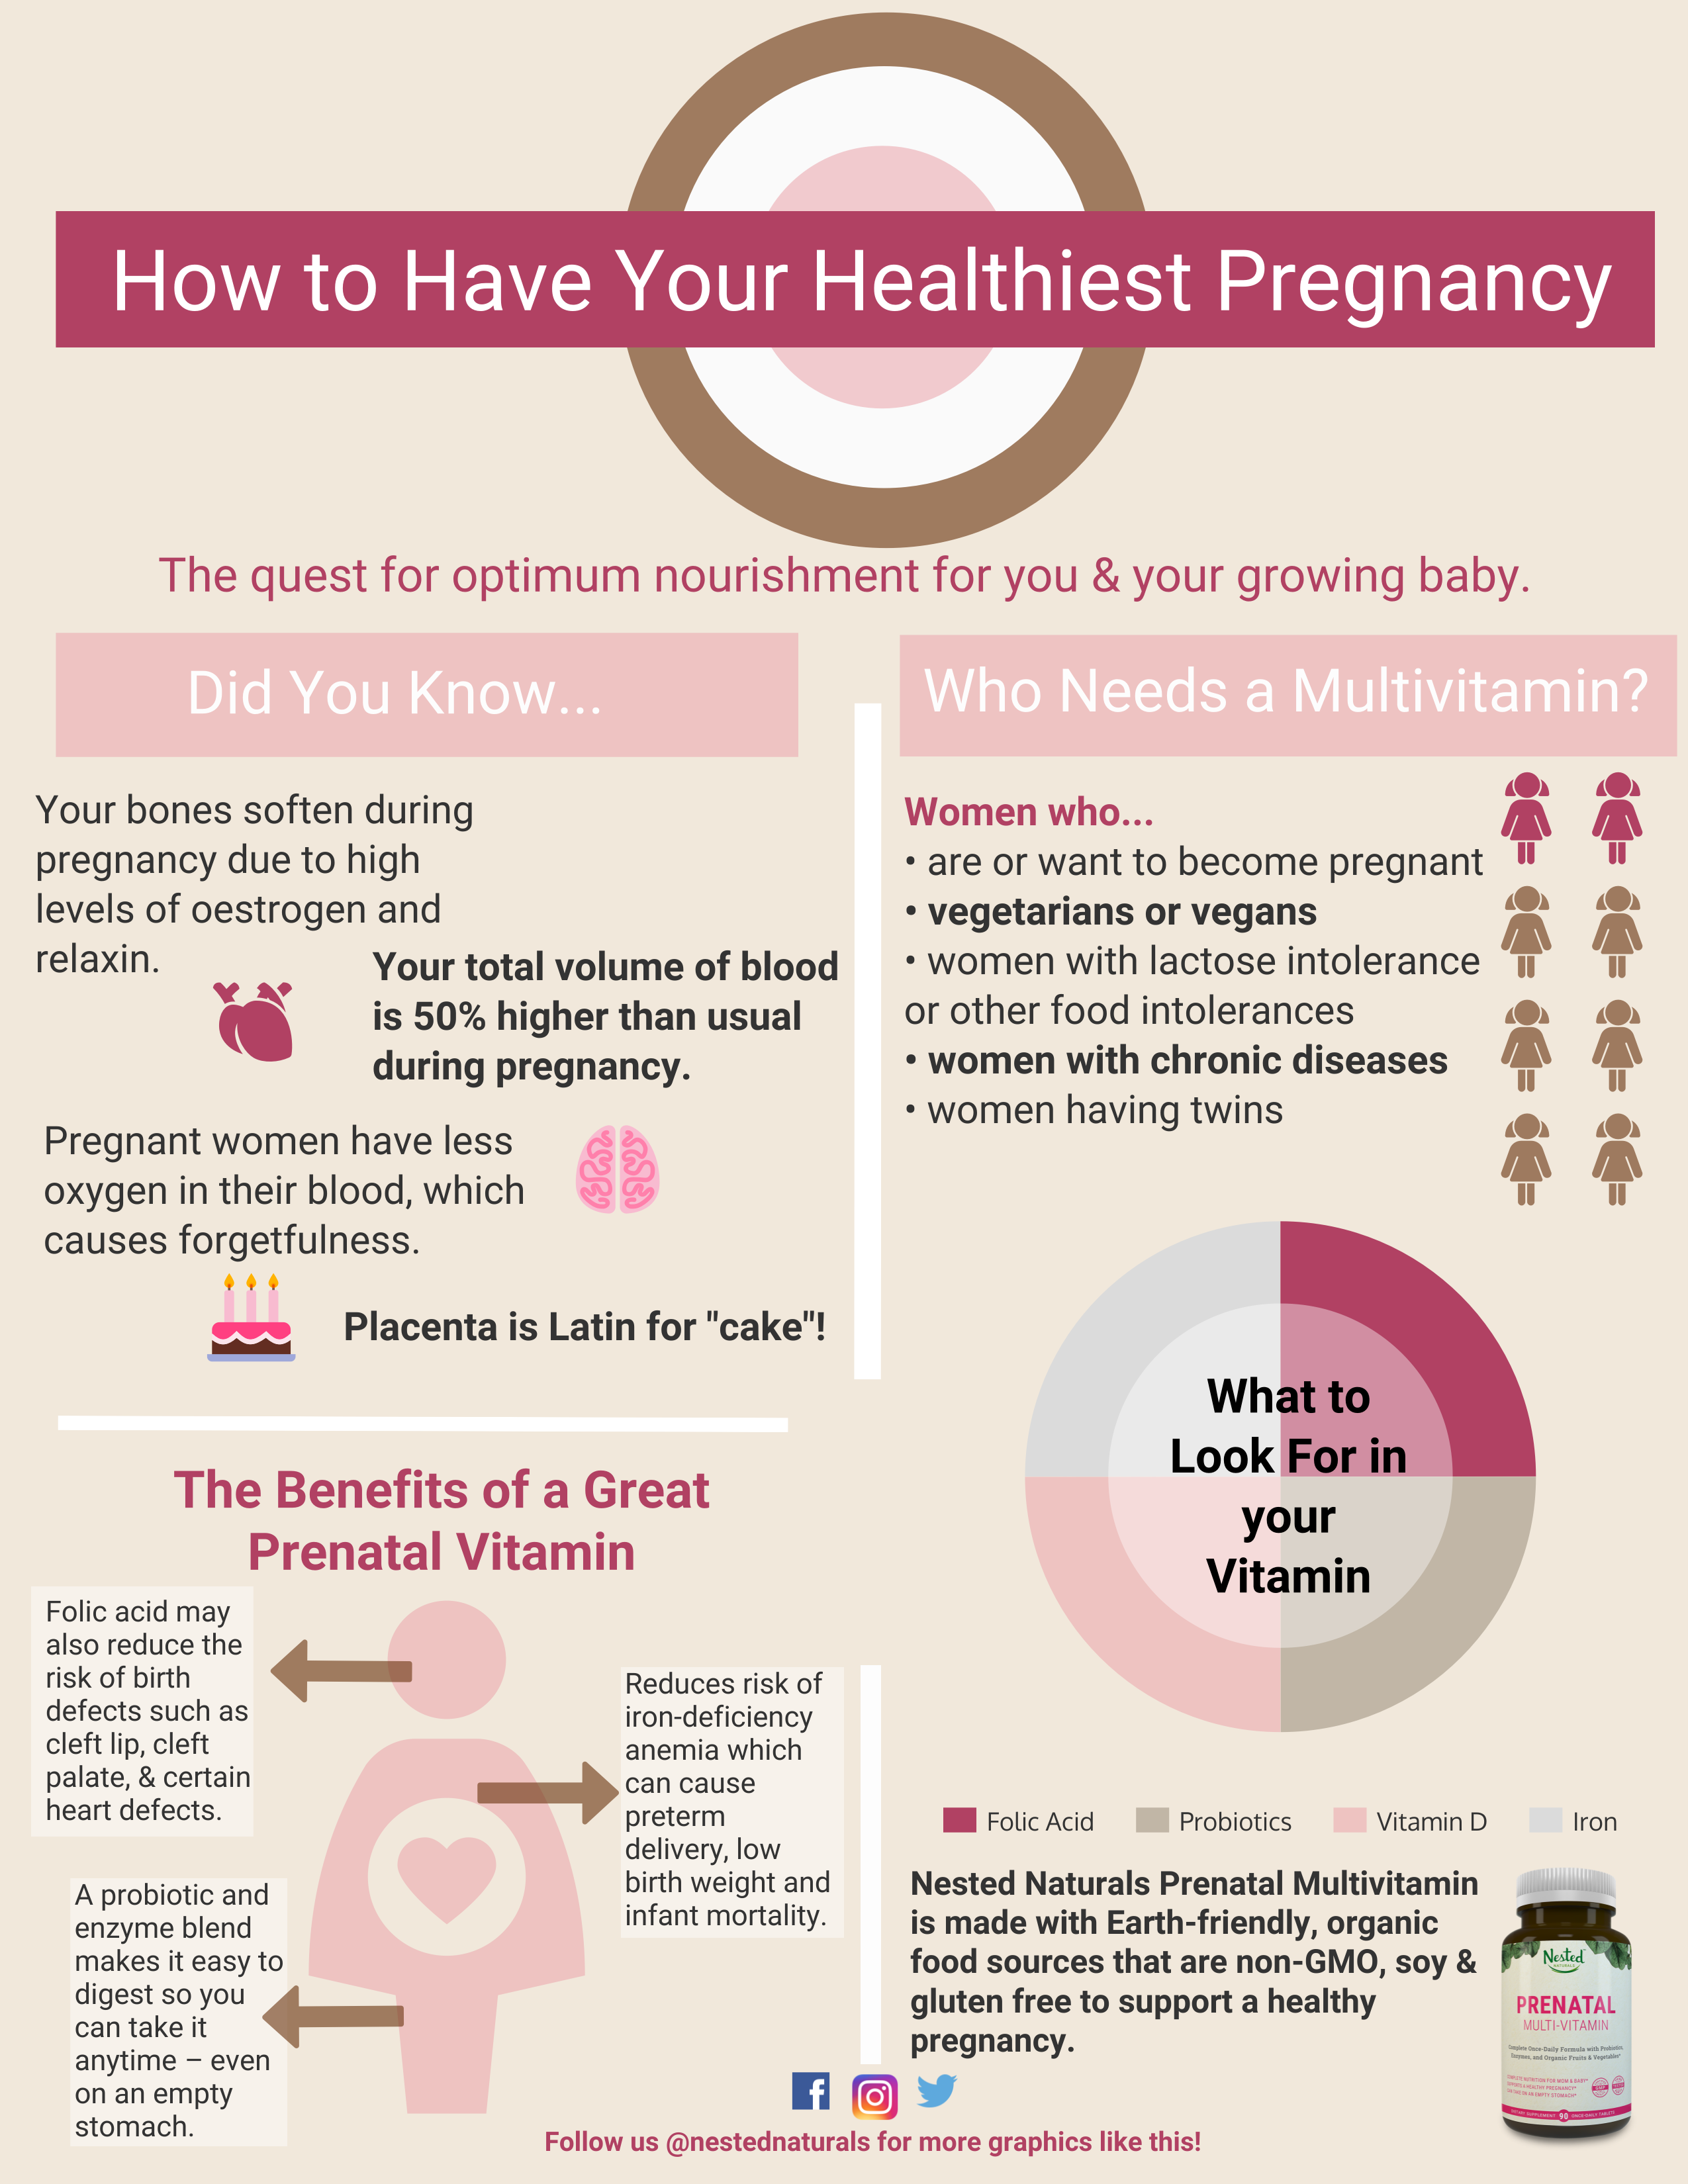 0e5e927f59052b0d06c3e18c2d7210da - How To Get Healthy Before Trying For A Baby